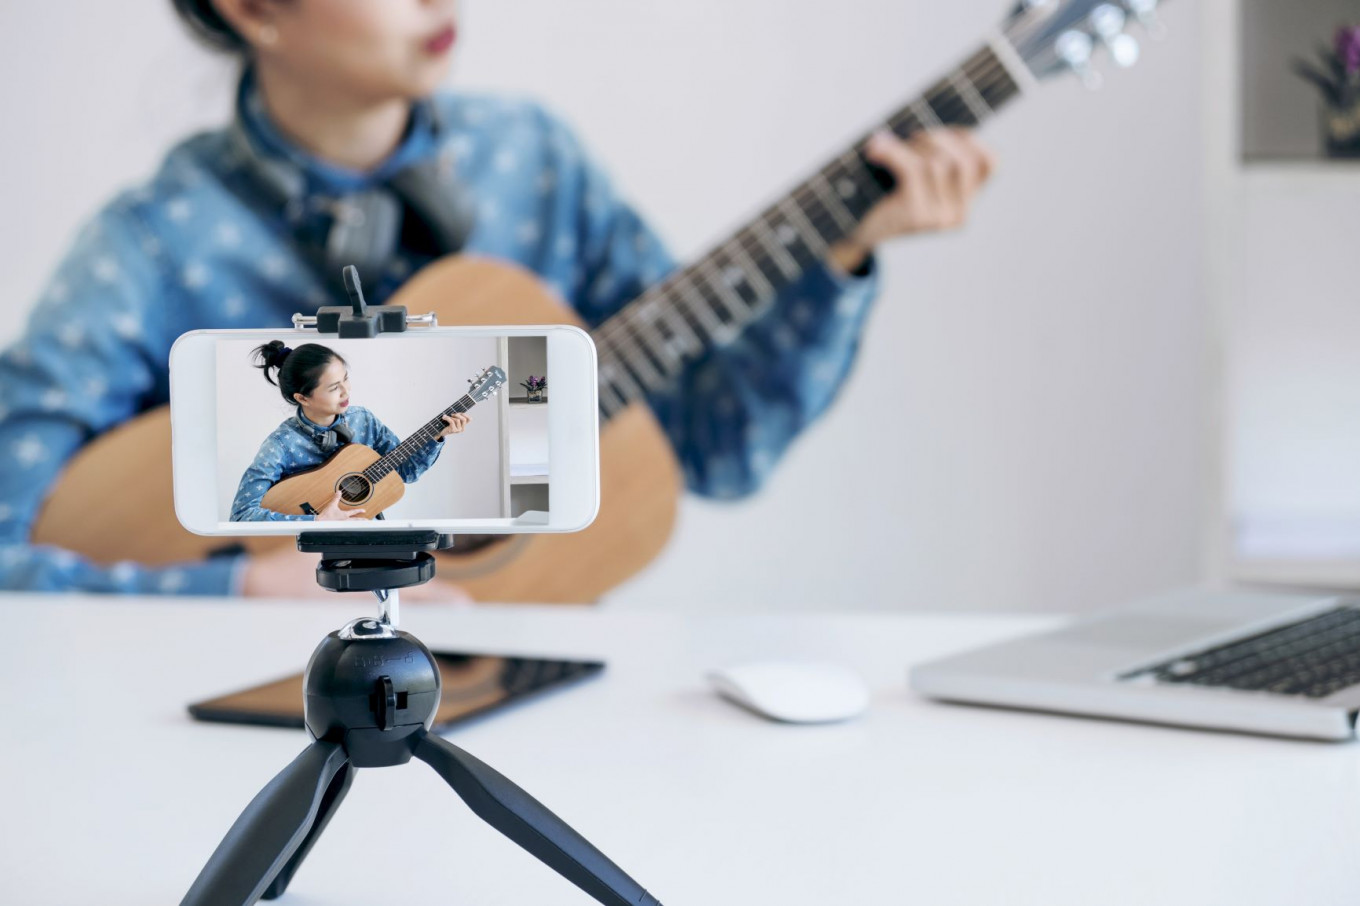 Musicians push for copyright protection on digital platforms